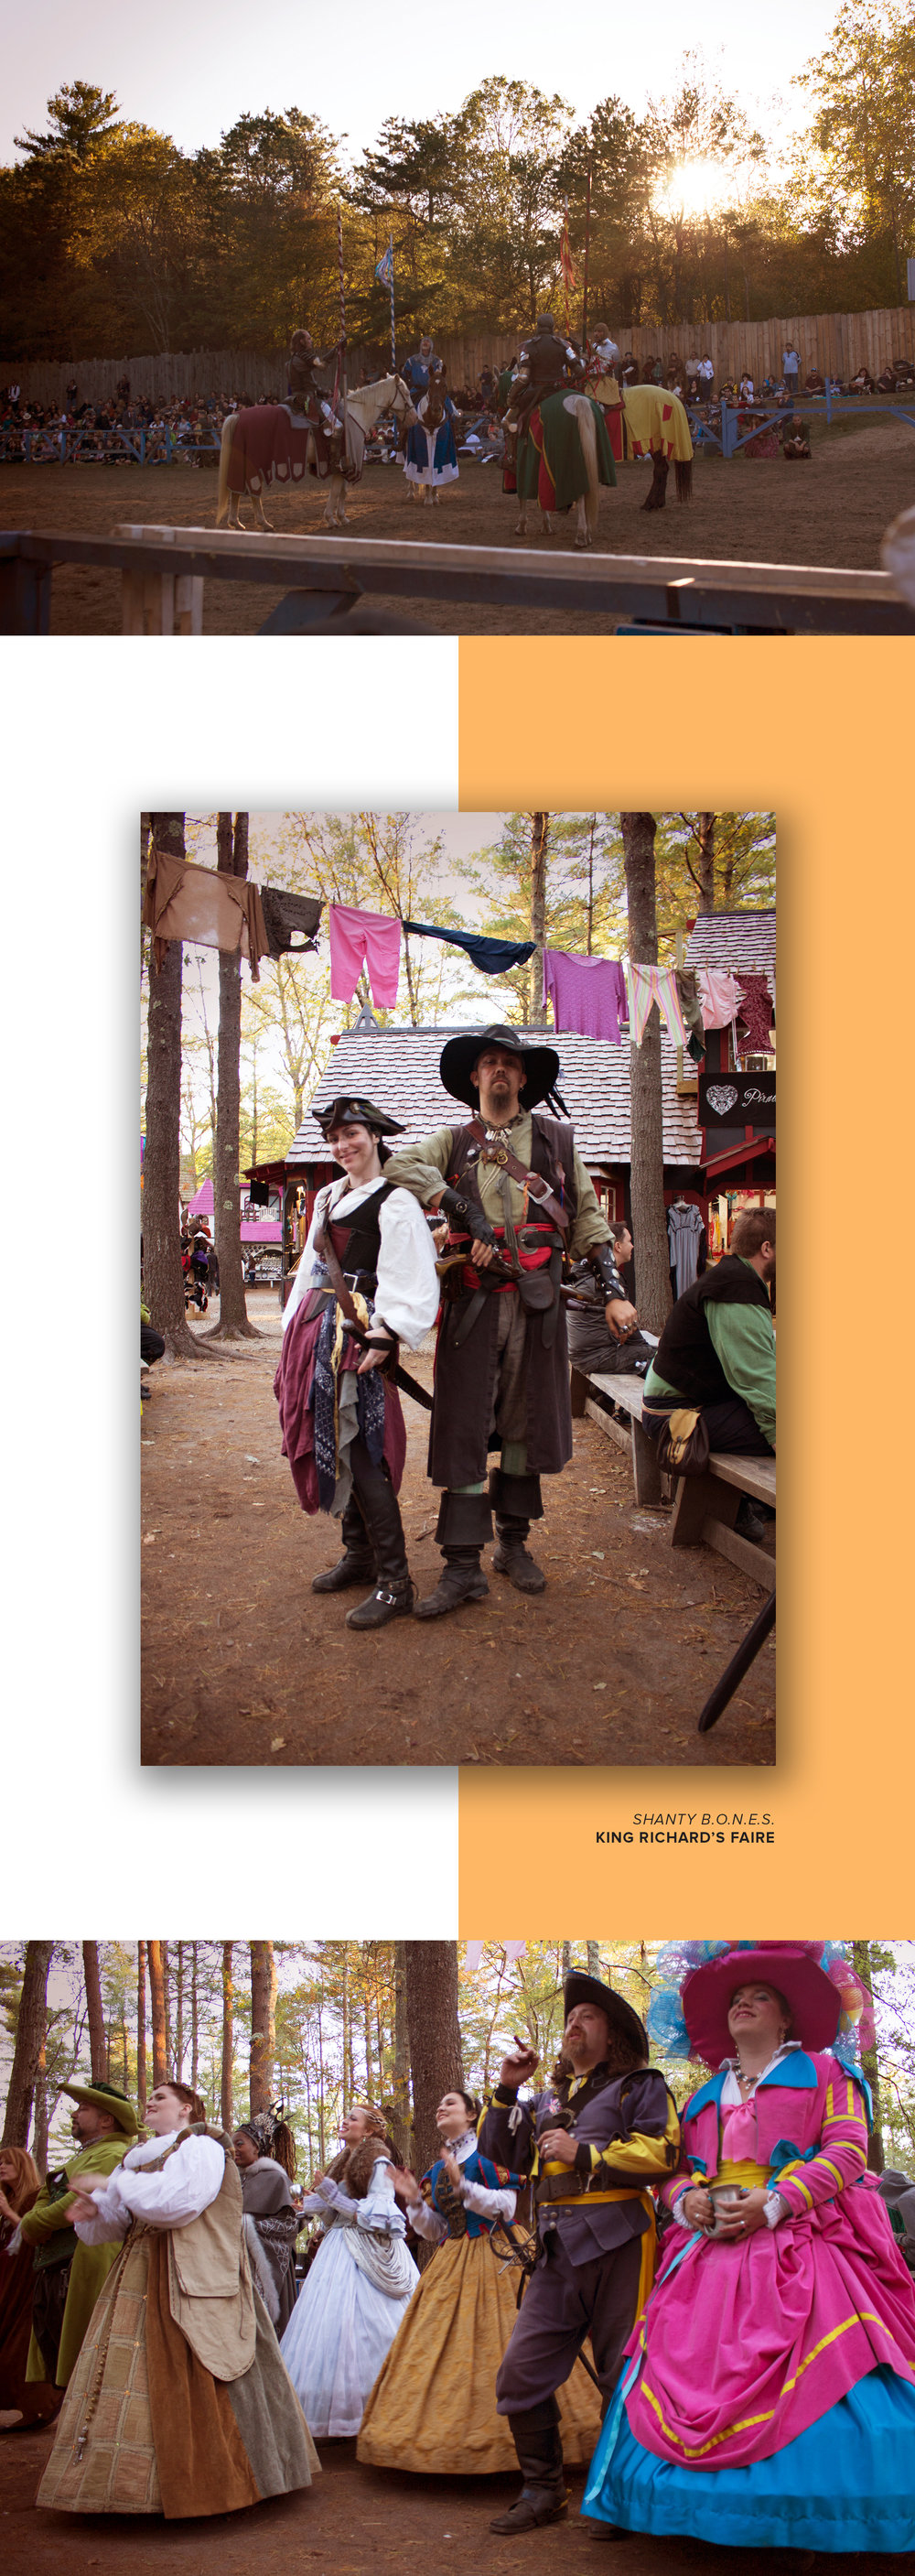 King Richard's Faire in Carver, MA, USA / Travel photography by Geena Matuson @geenamatuson #thegirlmirage. See more @ https://thegirlmirage.com.